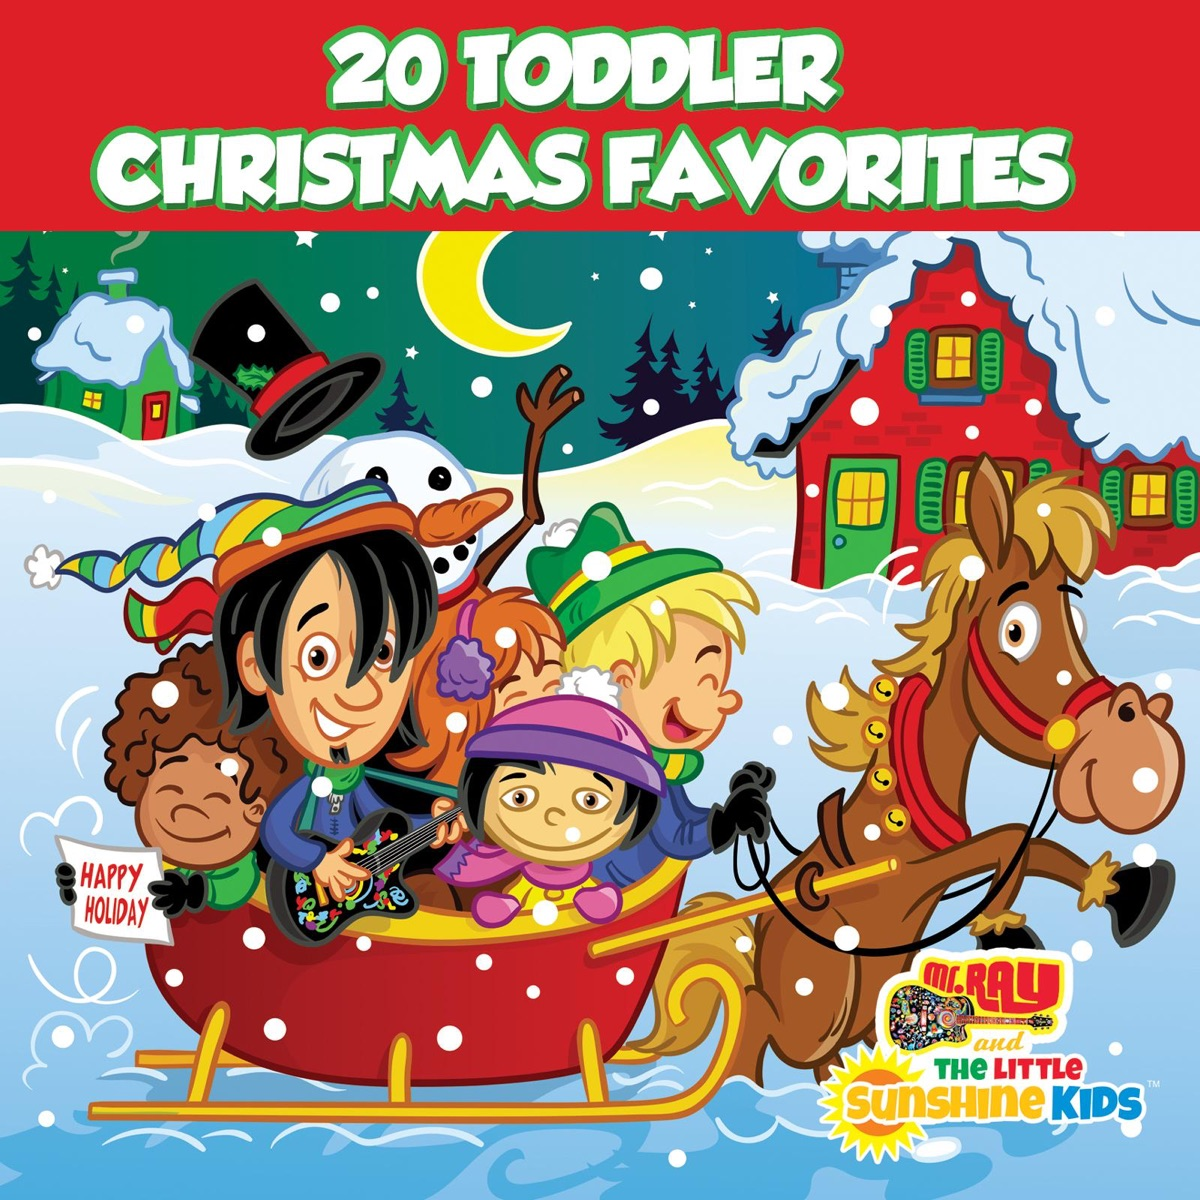 20 Toddler Christmas Favorites Album Cover by mr. RAY & The Little ...